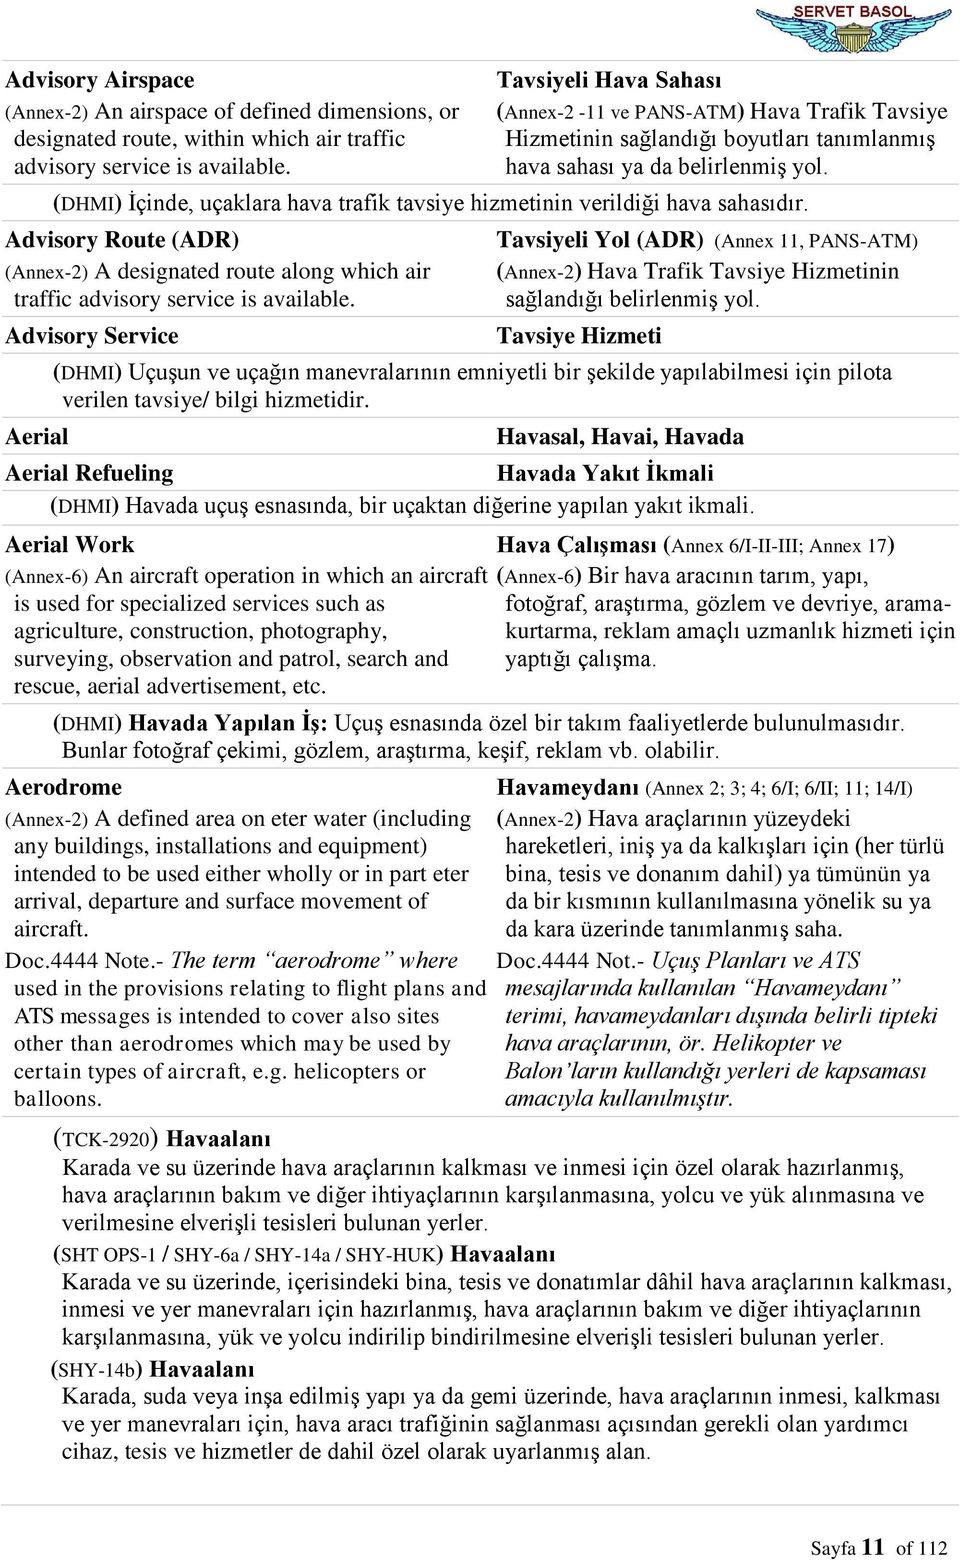 (DHMI) İçinde, uçaklara hava trafik tavsiye hizmetinin verildiği hava sahasıdır. Advisory Route (ADR) (Annex-2) A designated route along which air traffic advisory service is available.